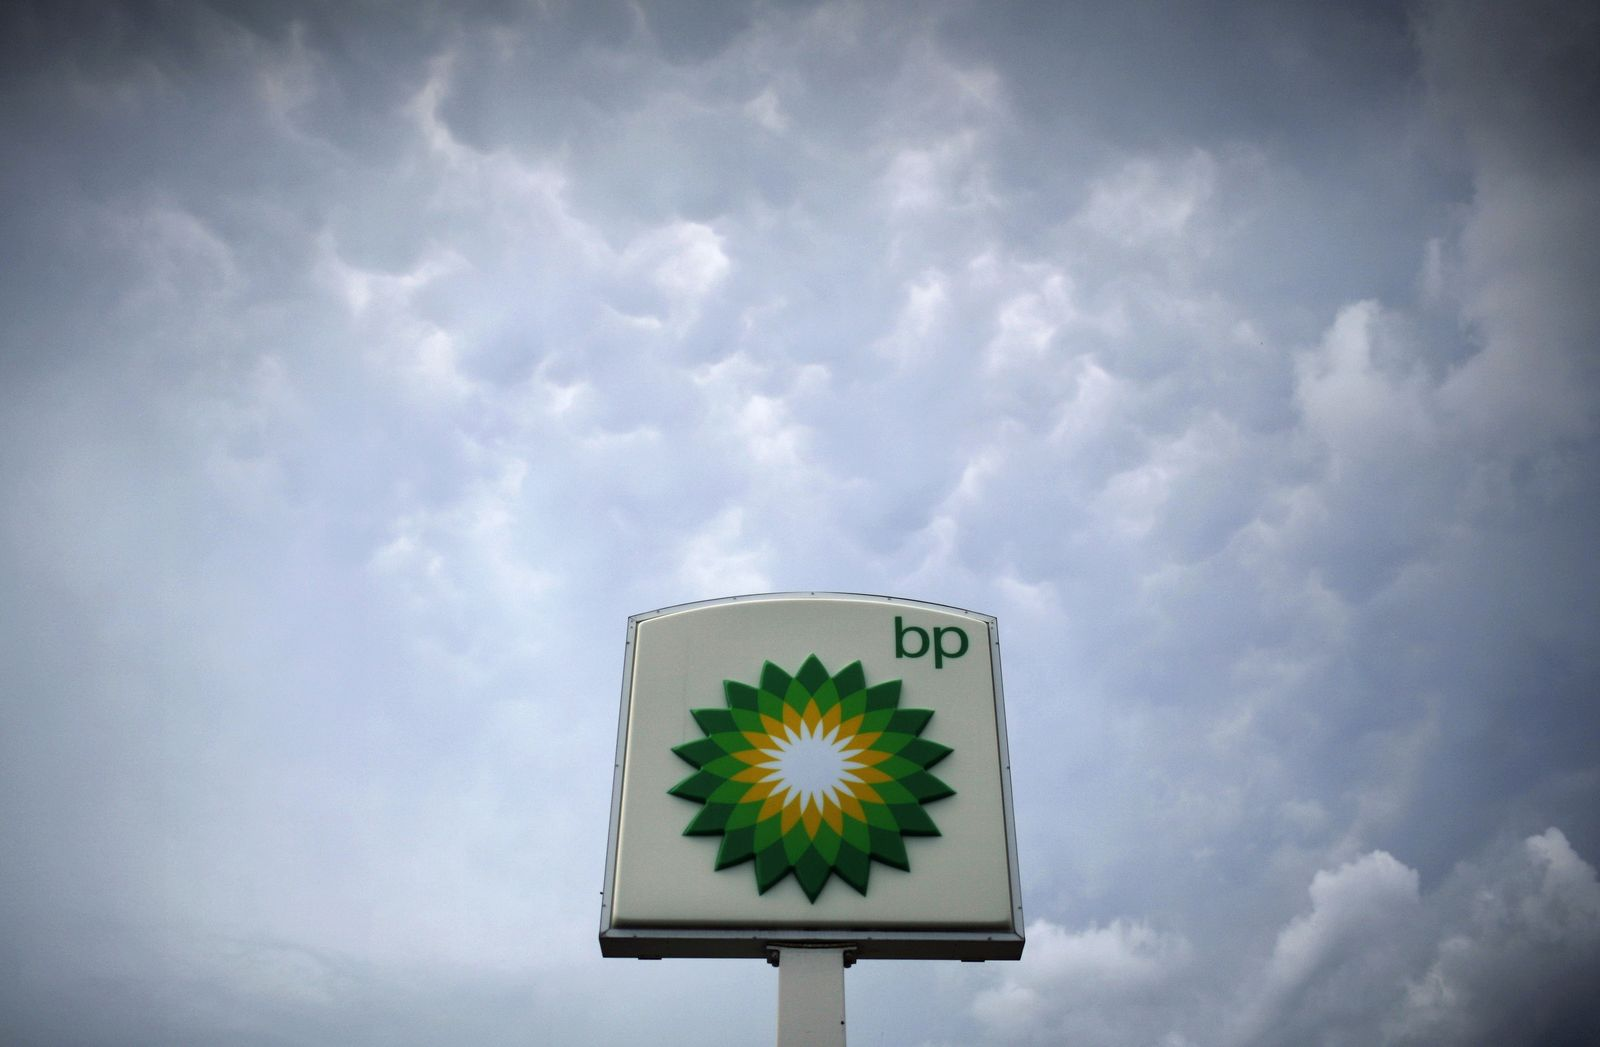 BP-Schild in Alexandria, VA